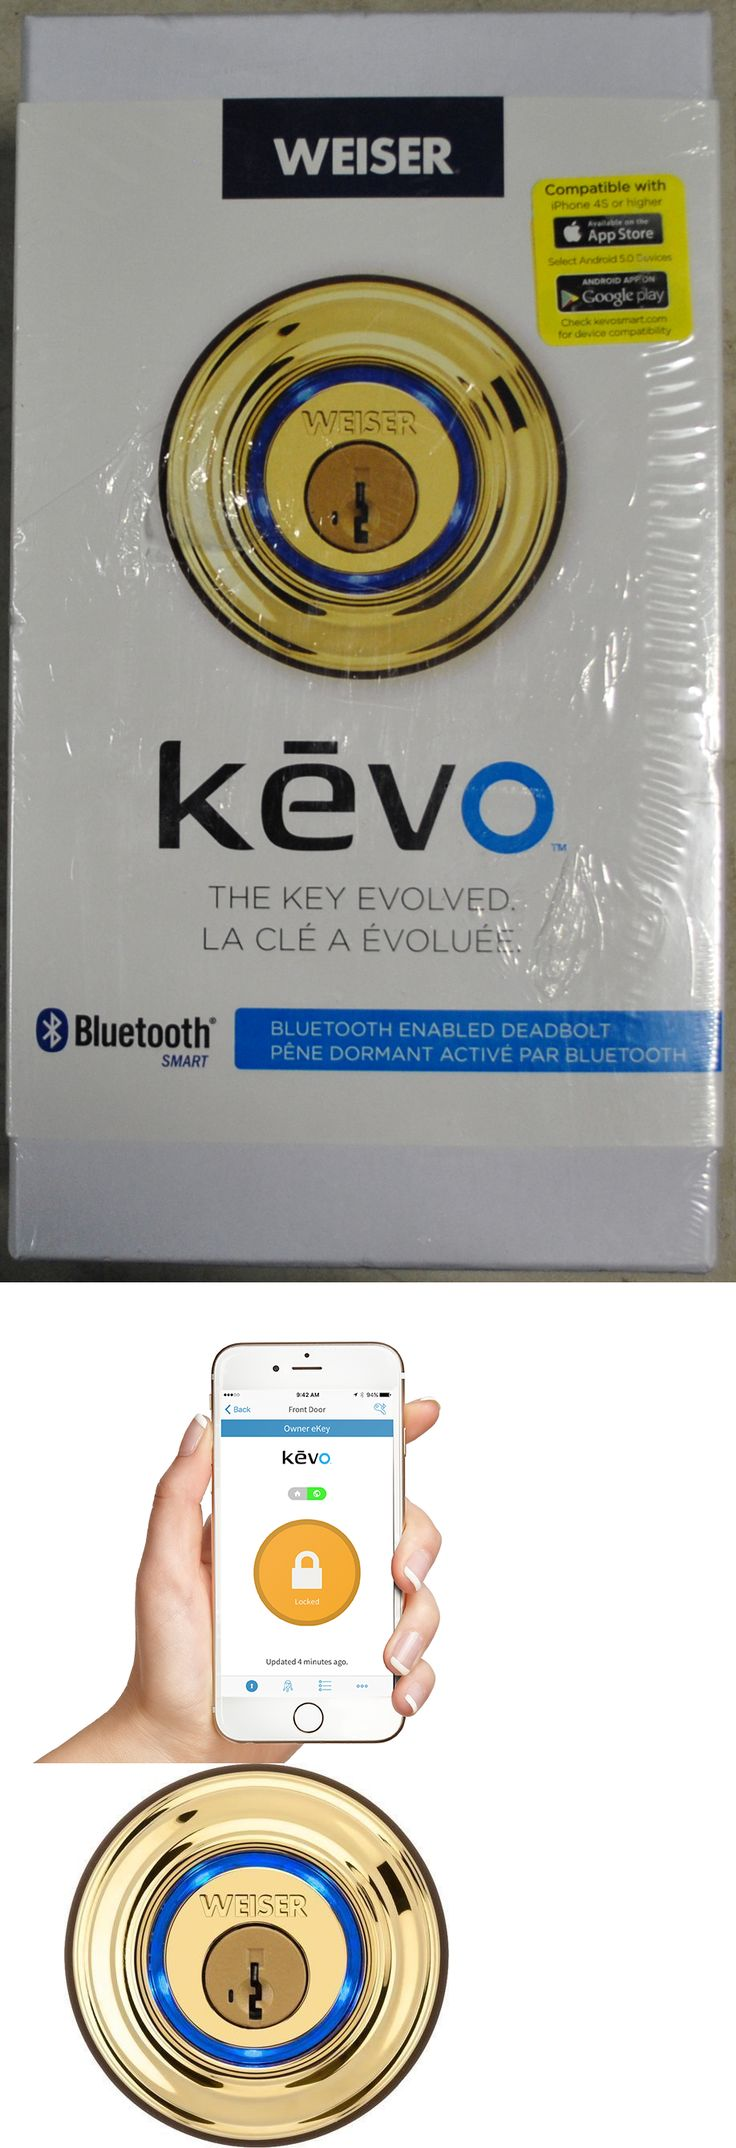 Other Portable Audio: Weiser Kevo [Polished Brass 9Ged15000-0] Enabled Deadbolt Lock Iphone Bluetooth -> BUY IT NOW ONLY: $119.99 on eBay!